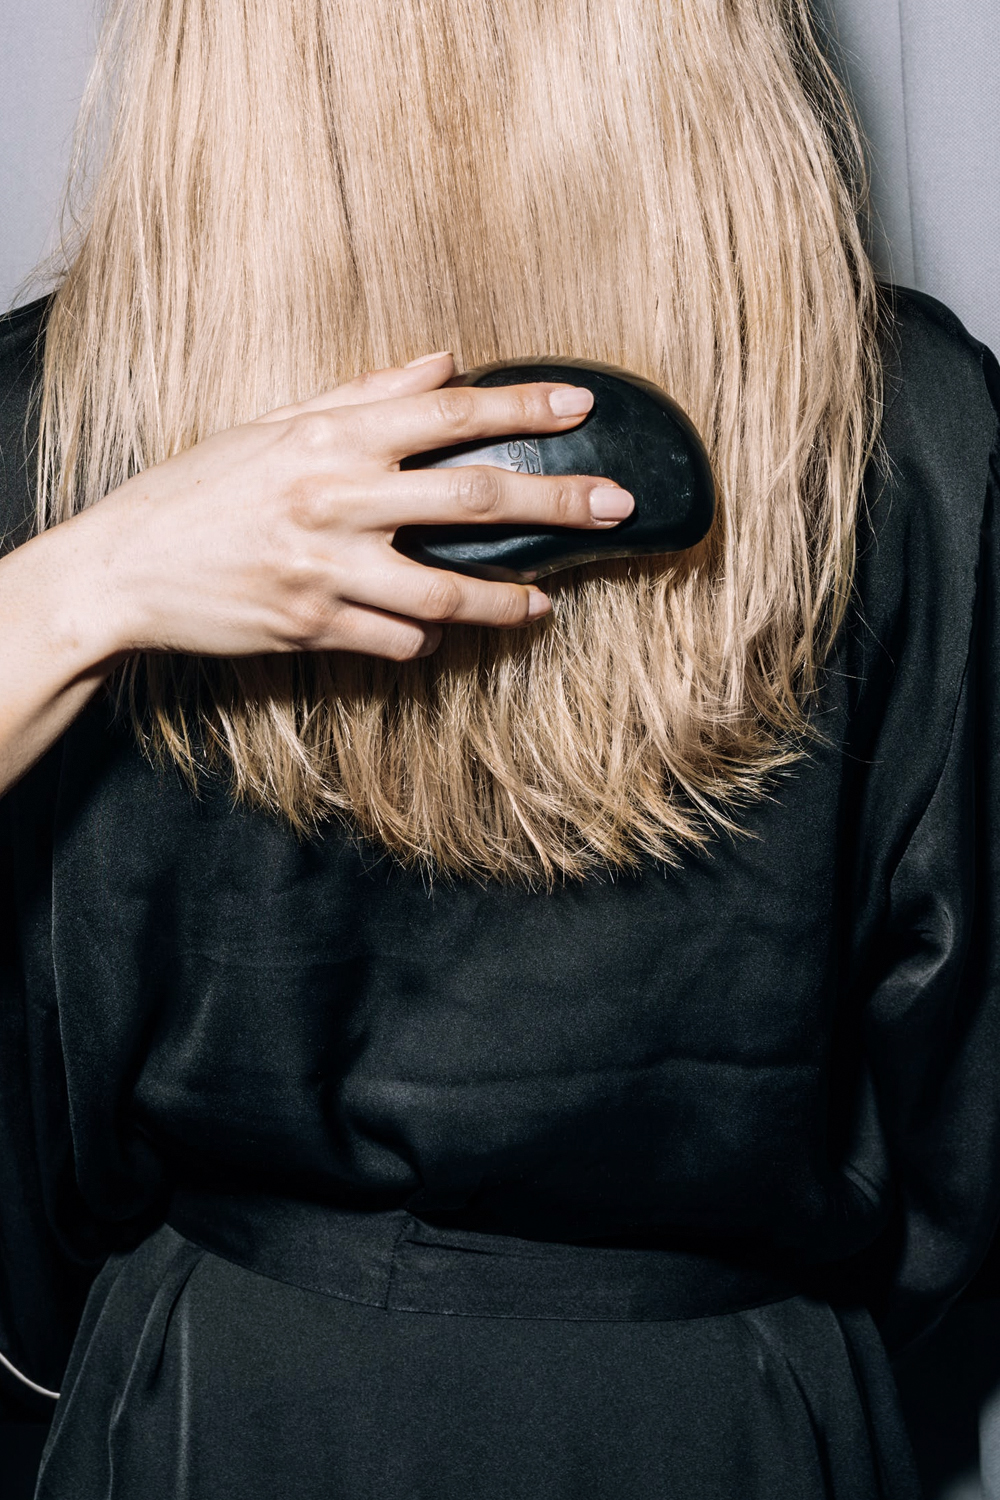 a hand combs womens hair, a view from the back